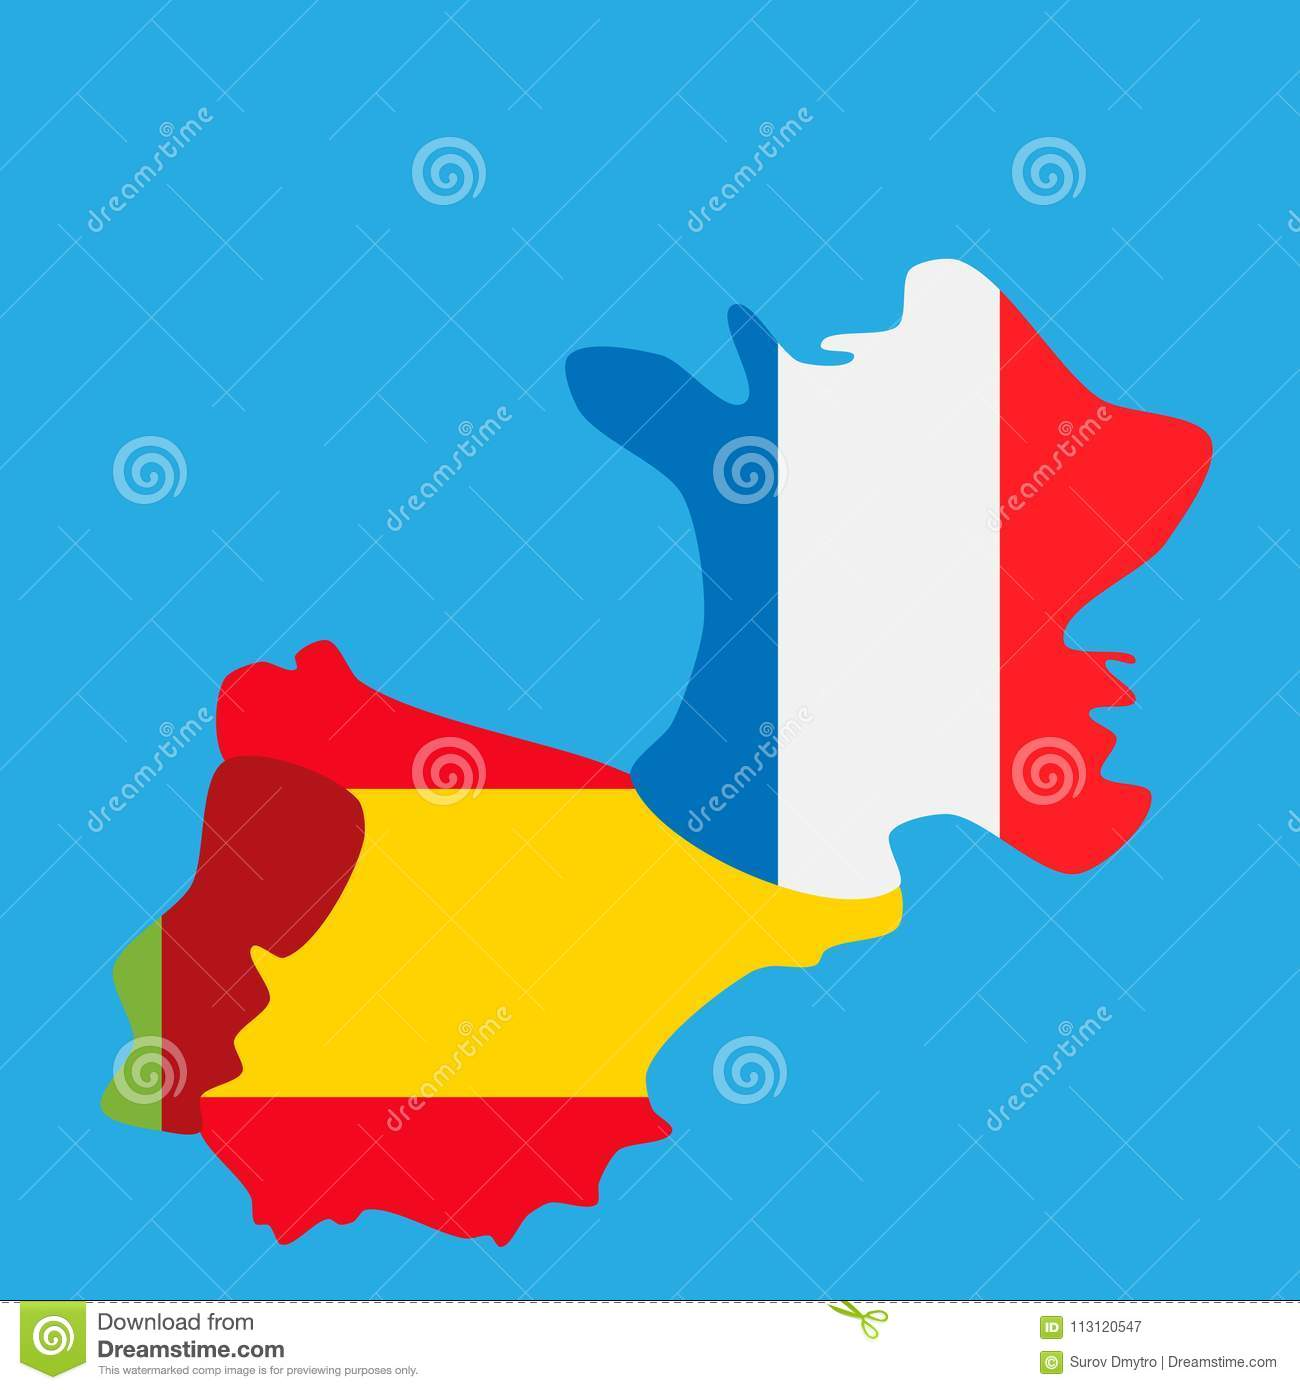 Map Of Spain And France And Portugal.Map Of Portugal Spain And France With National Flags Stock